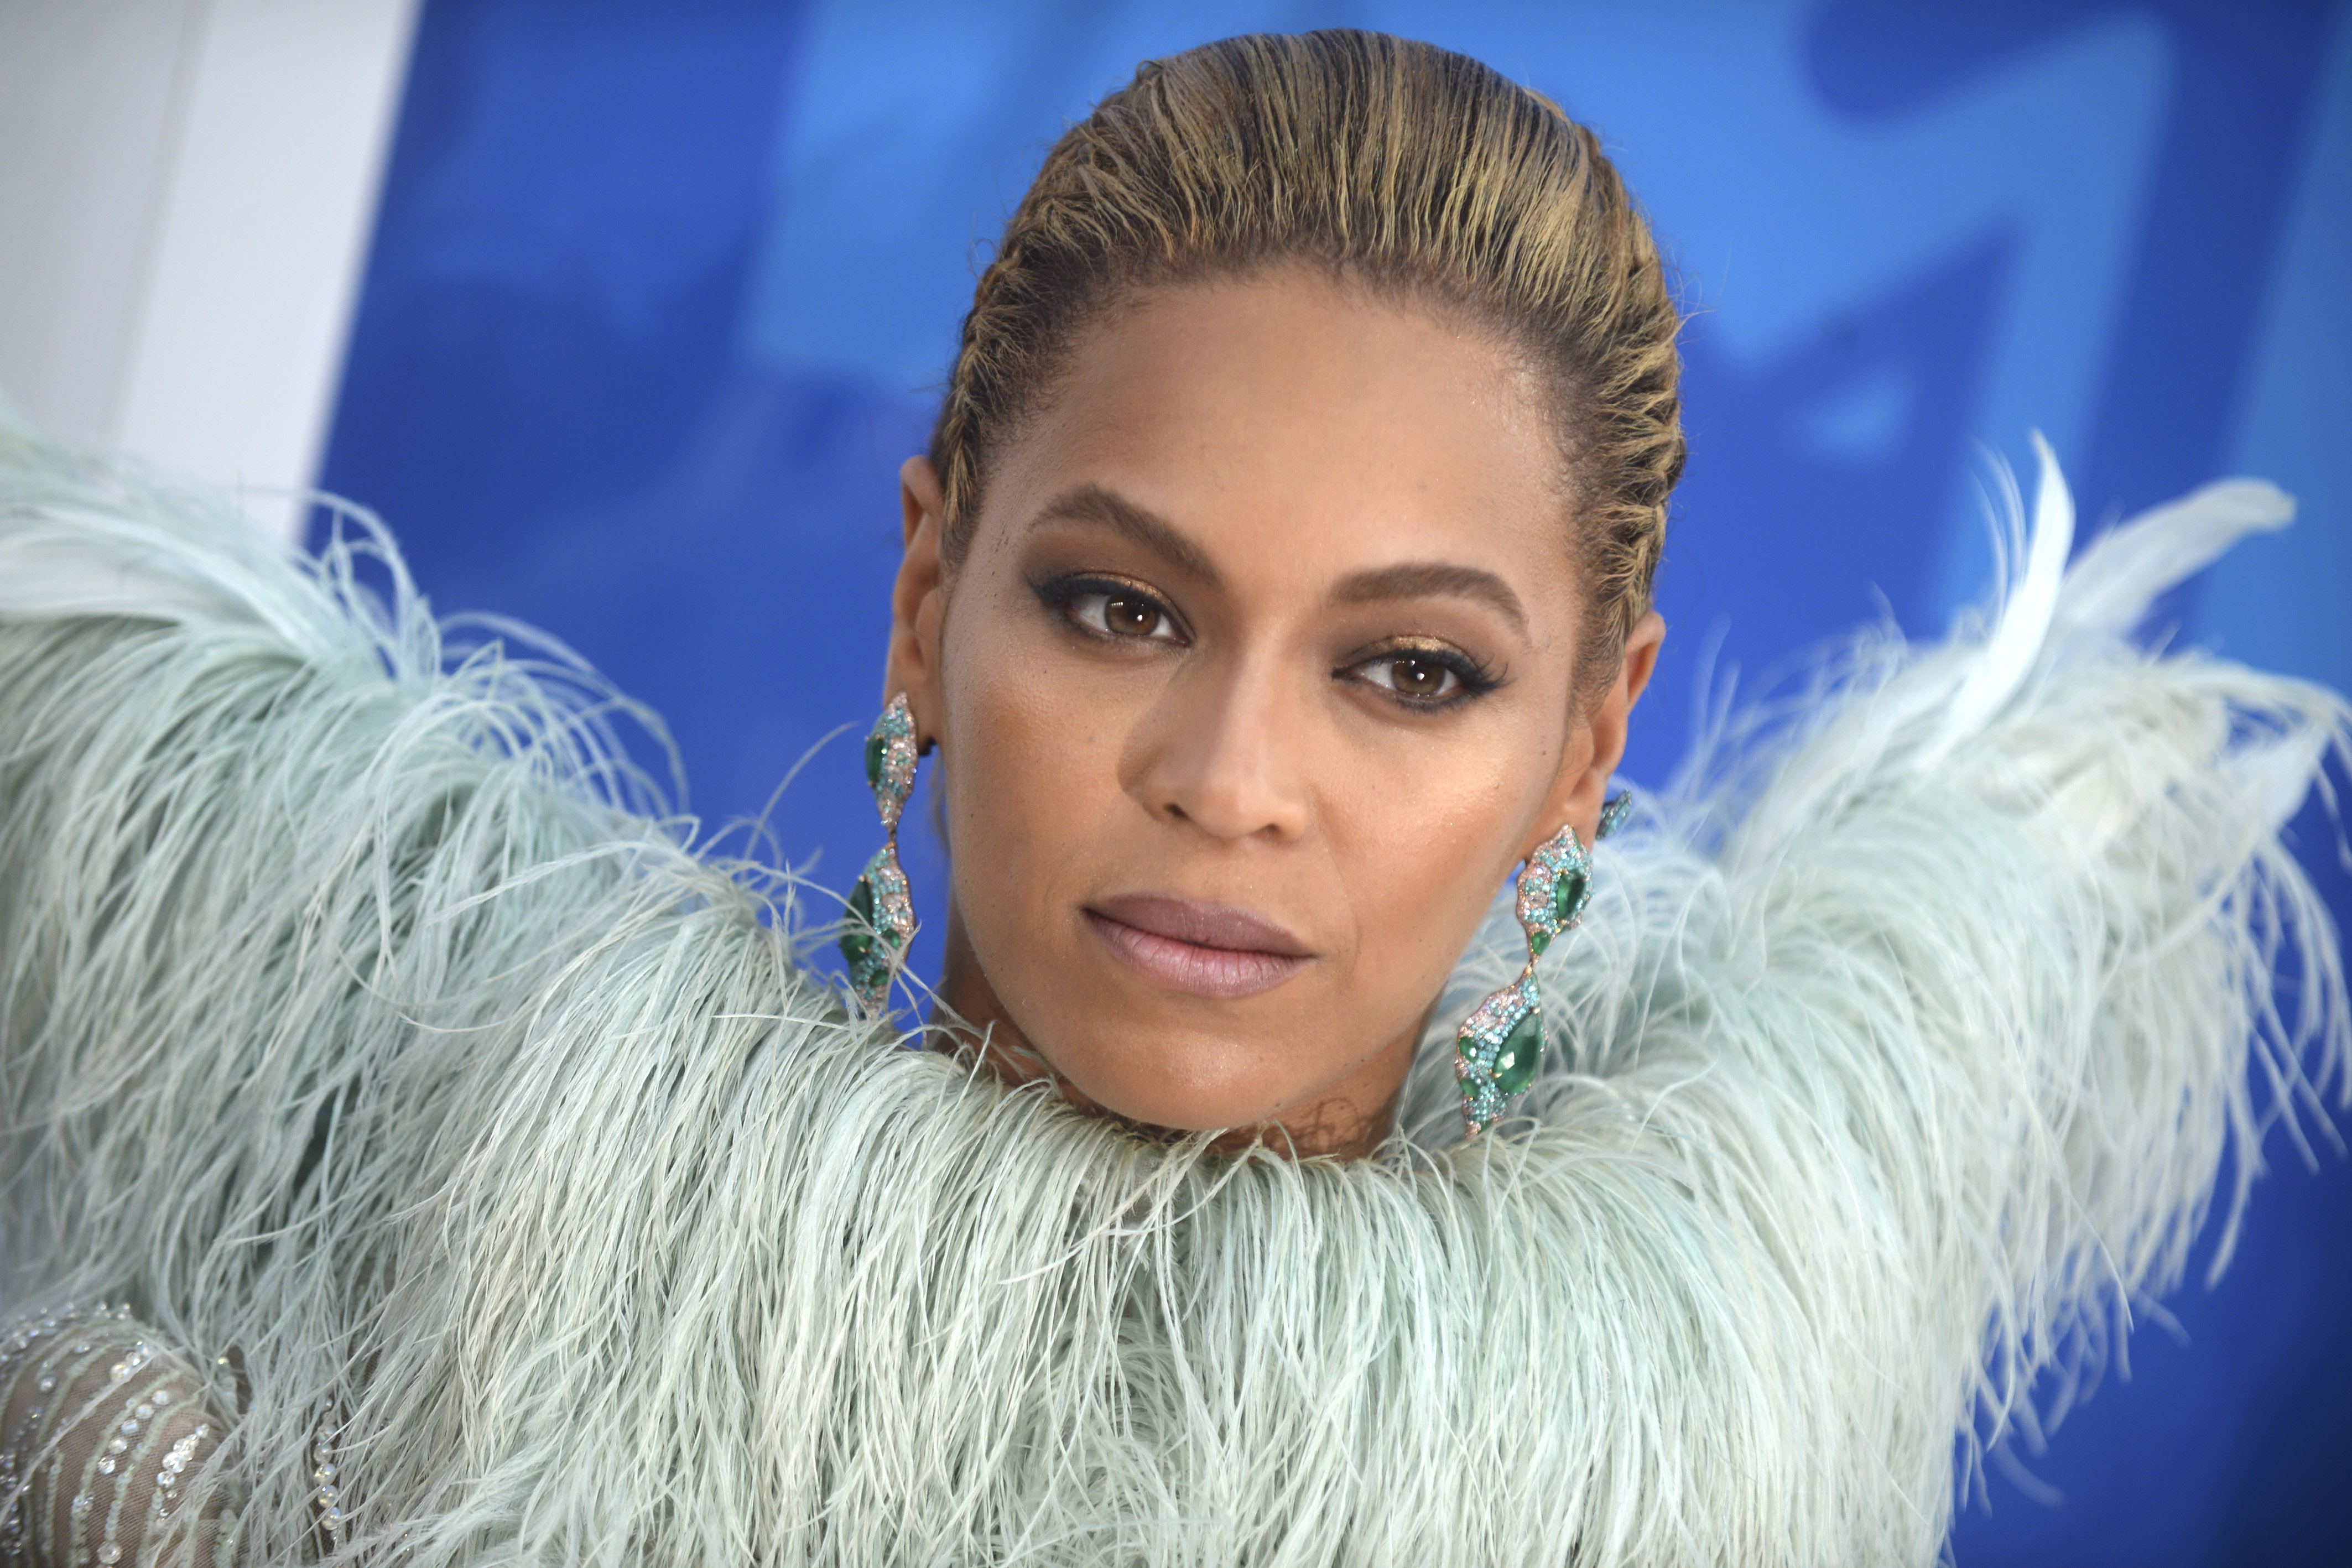 Beyoncé is leading the cast for the live-action remake of Lion King and people are going savannah-wild! Here are some of the funniest reactions from Twitter. (Photo: WENN)